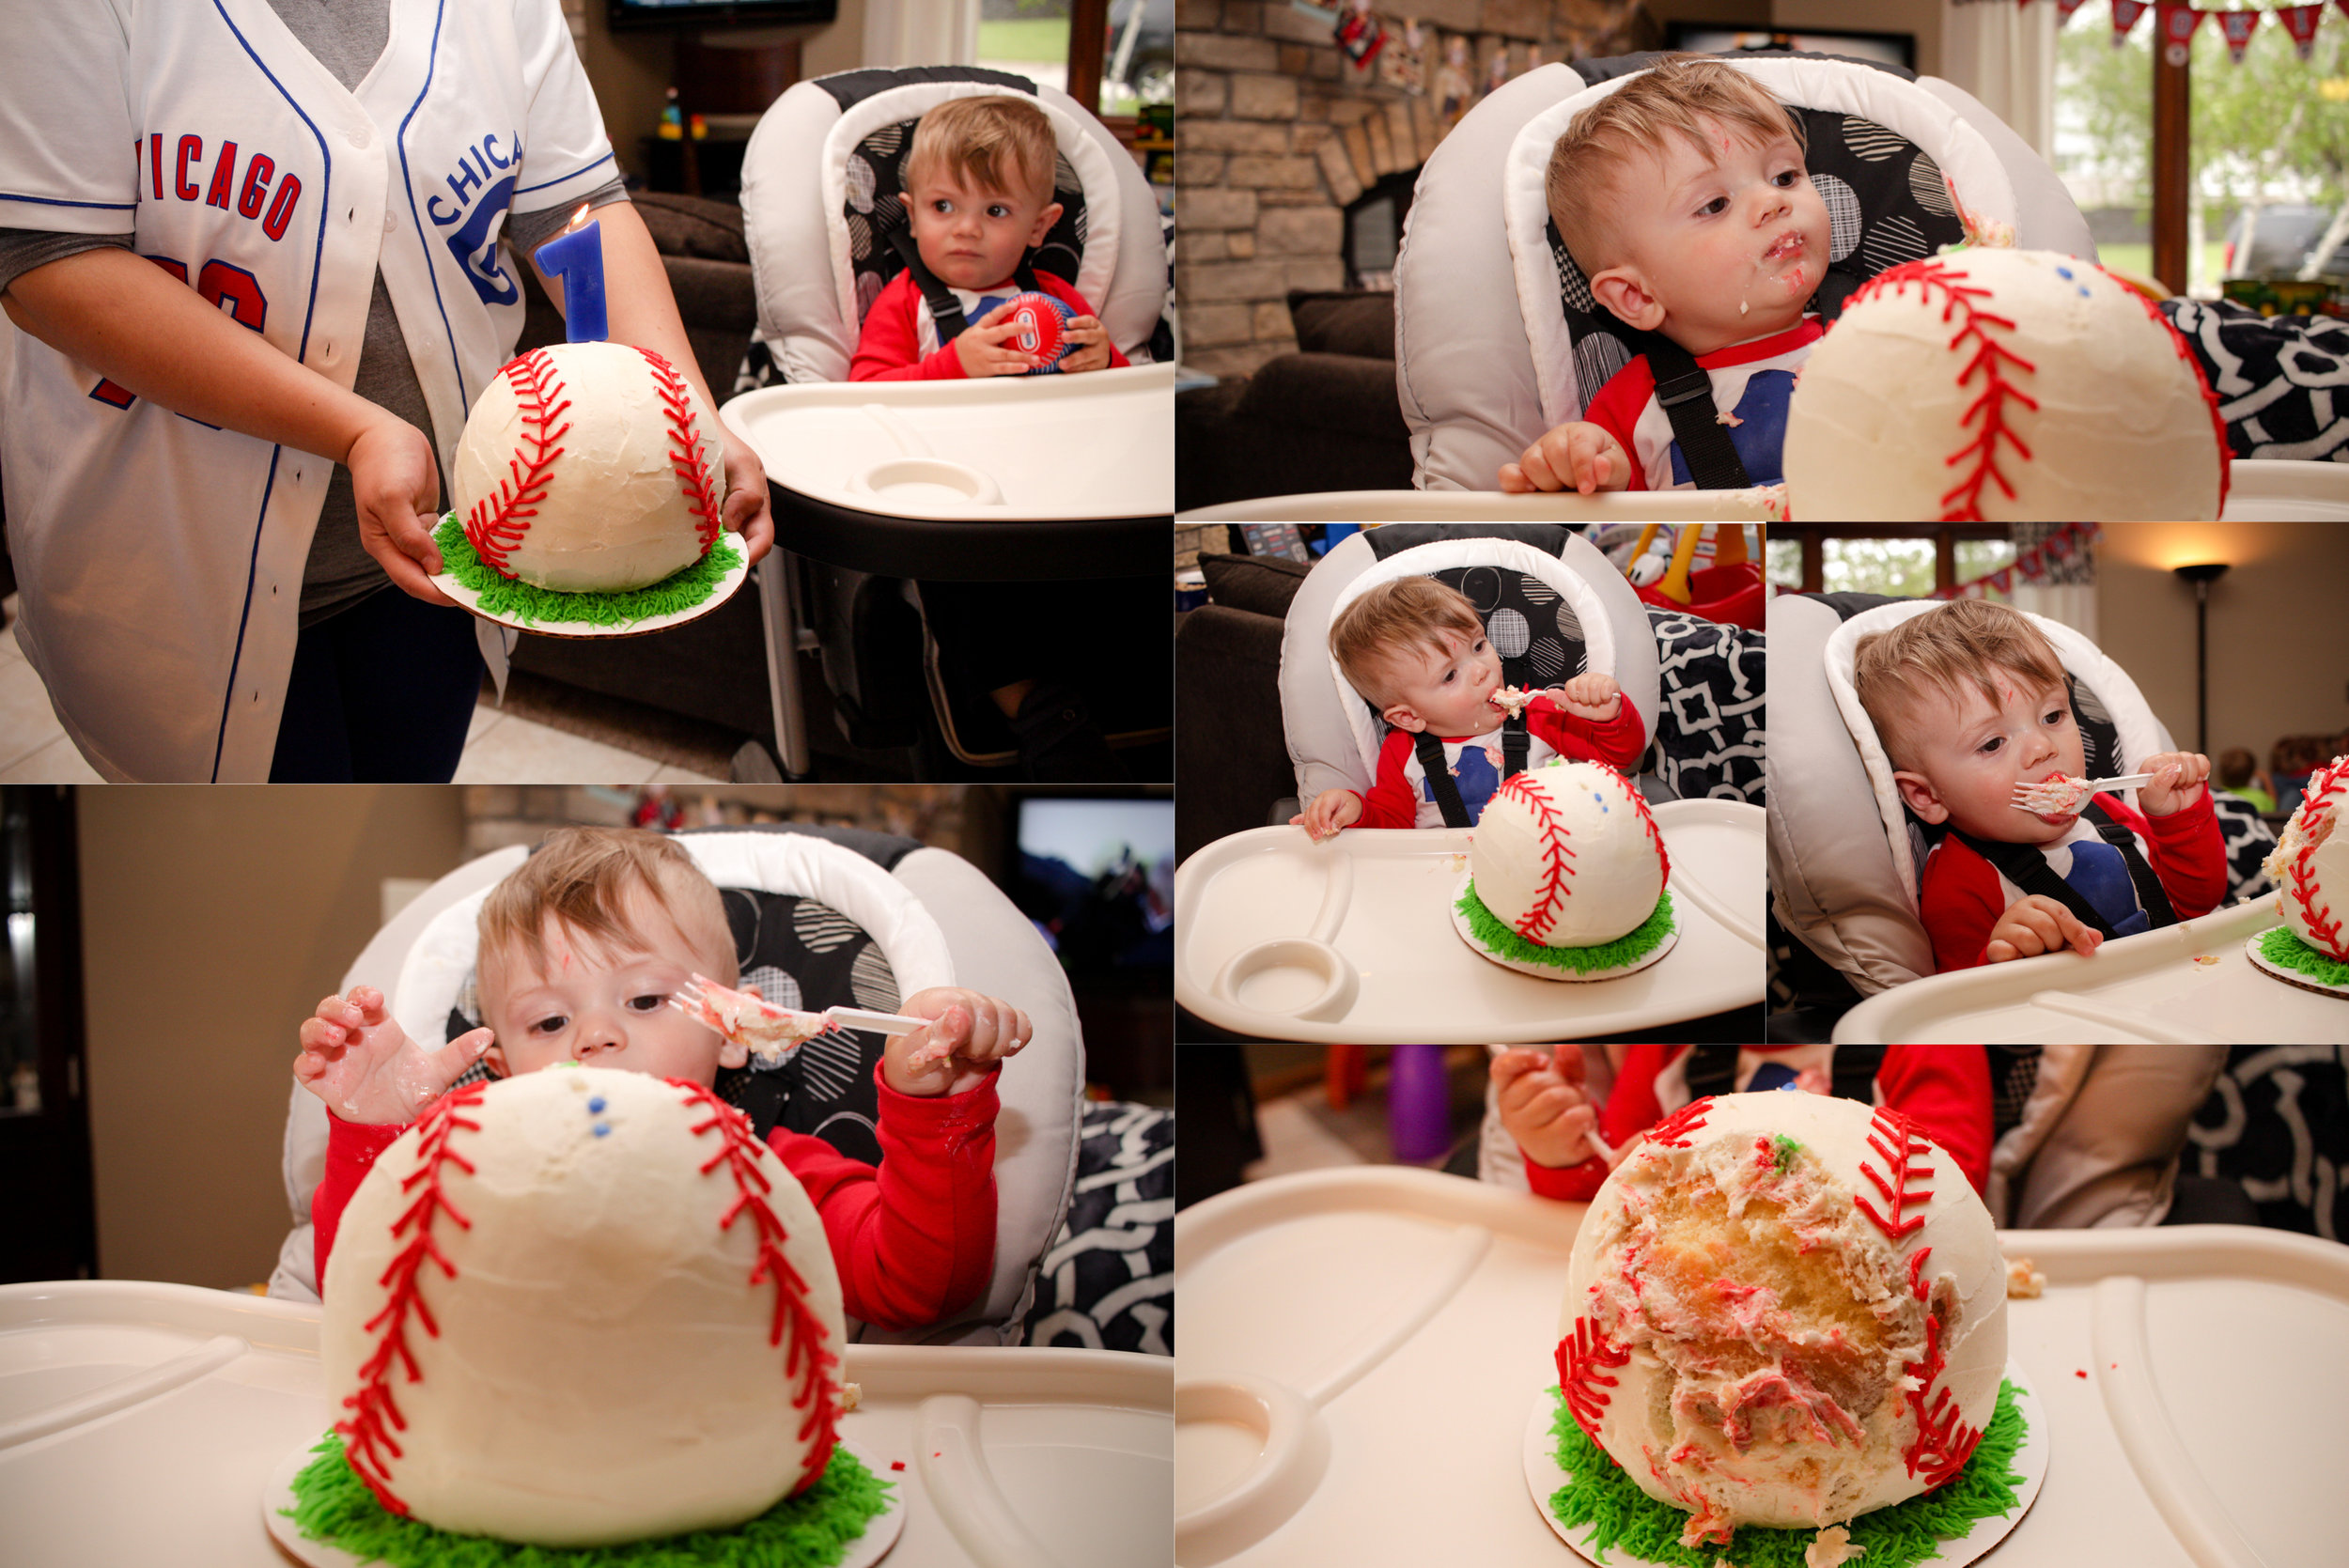 And that cake! I was pretty obsessed with it.  Theo wasn't interested in diving into it with just his hands, but once he had access to a fork, he was able to dig a chunk out of it. He enjoyed that frosting!